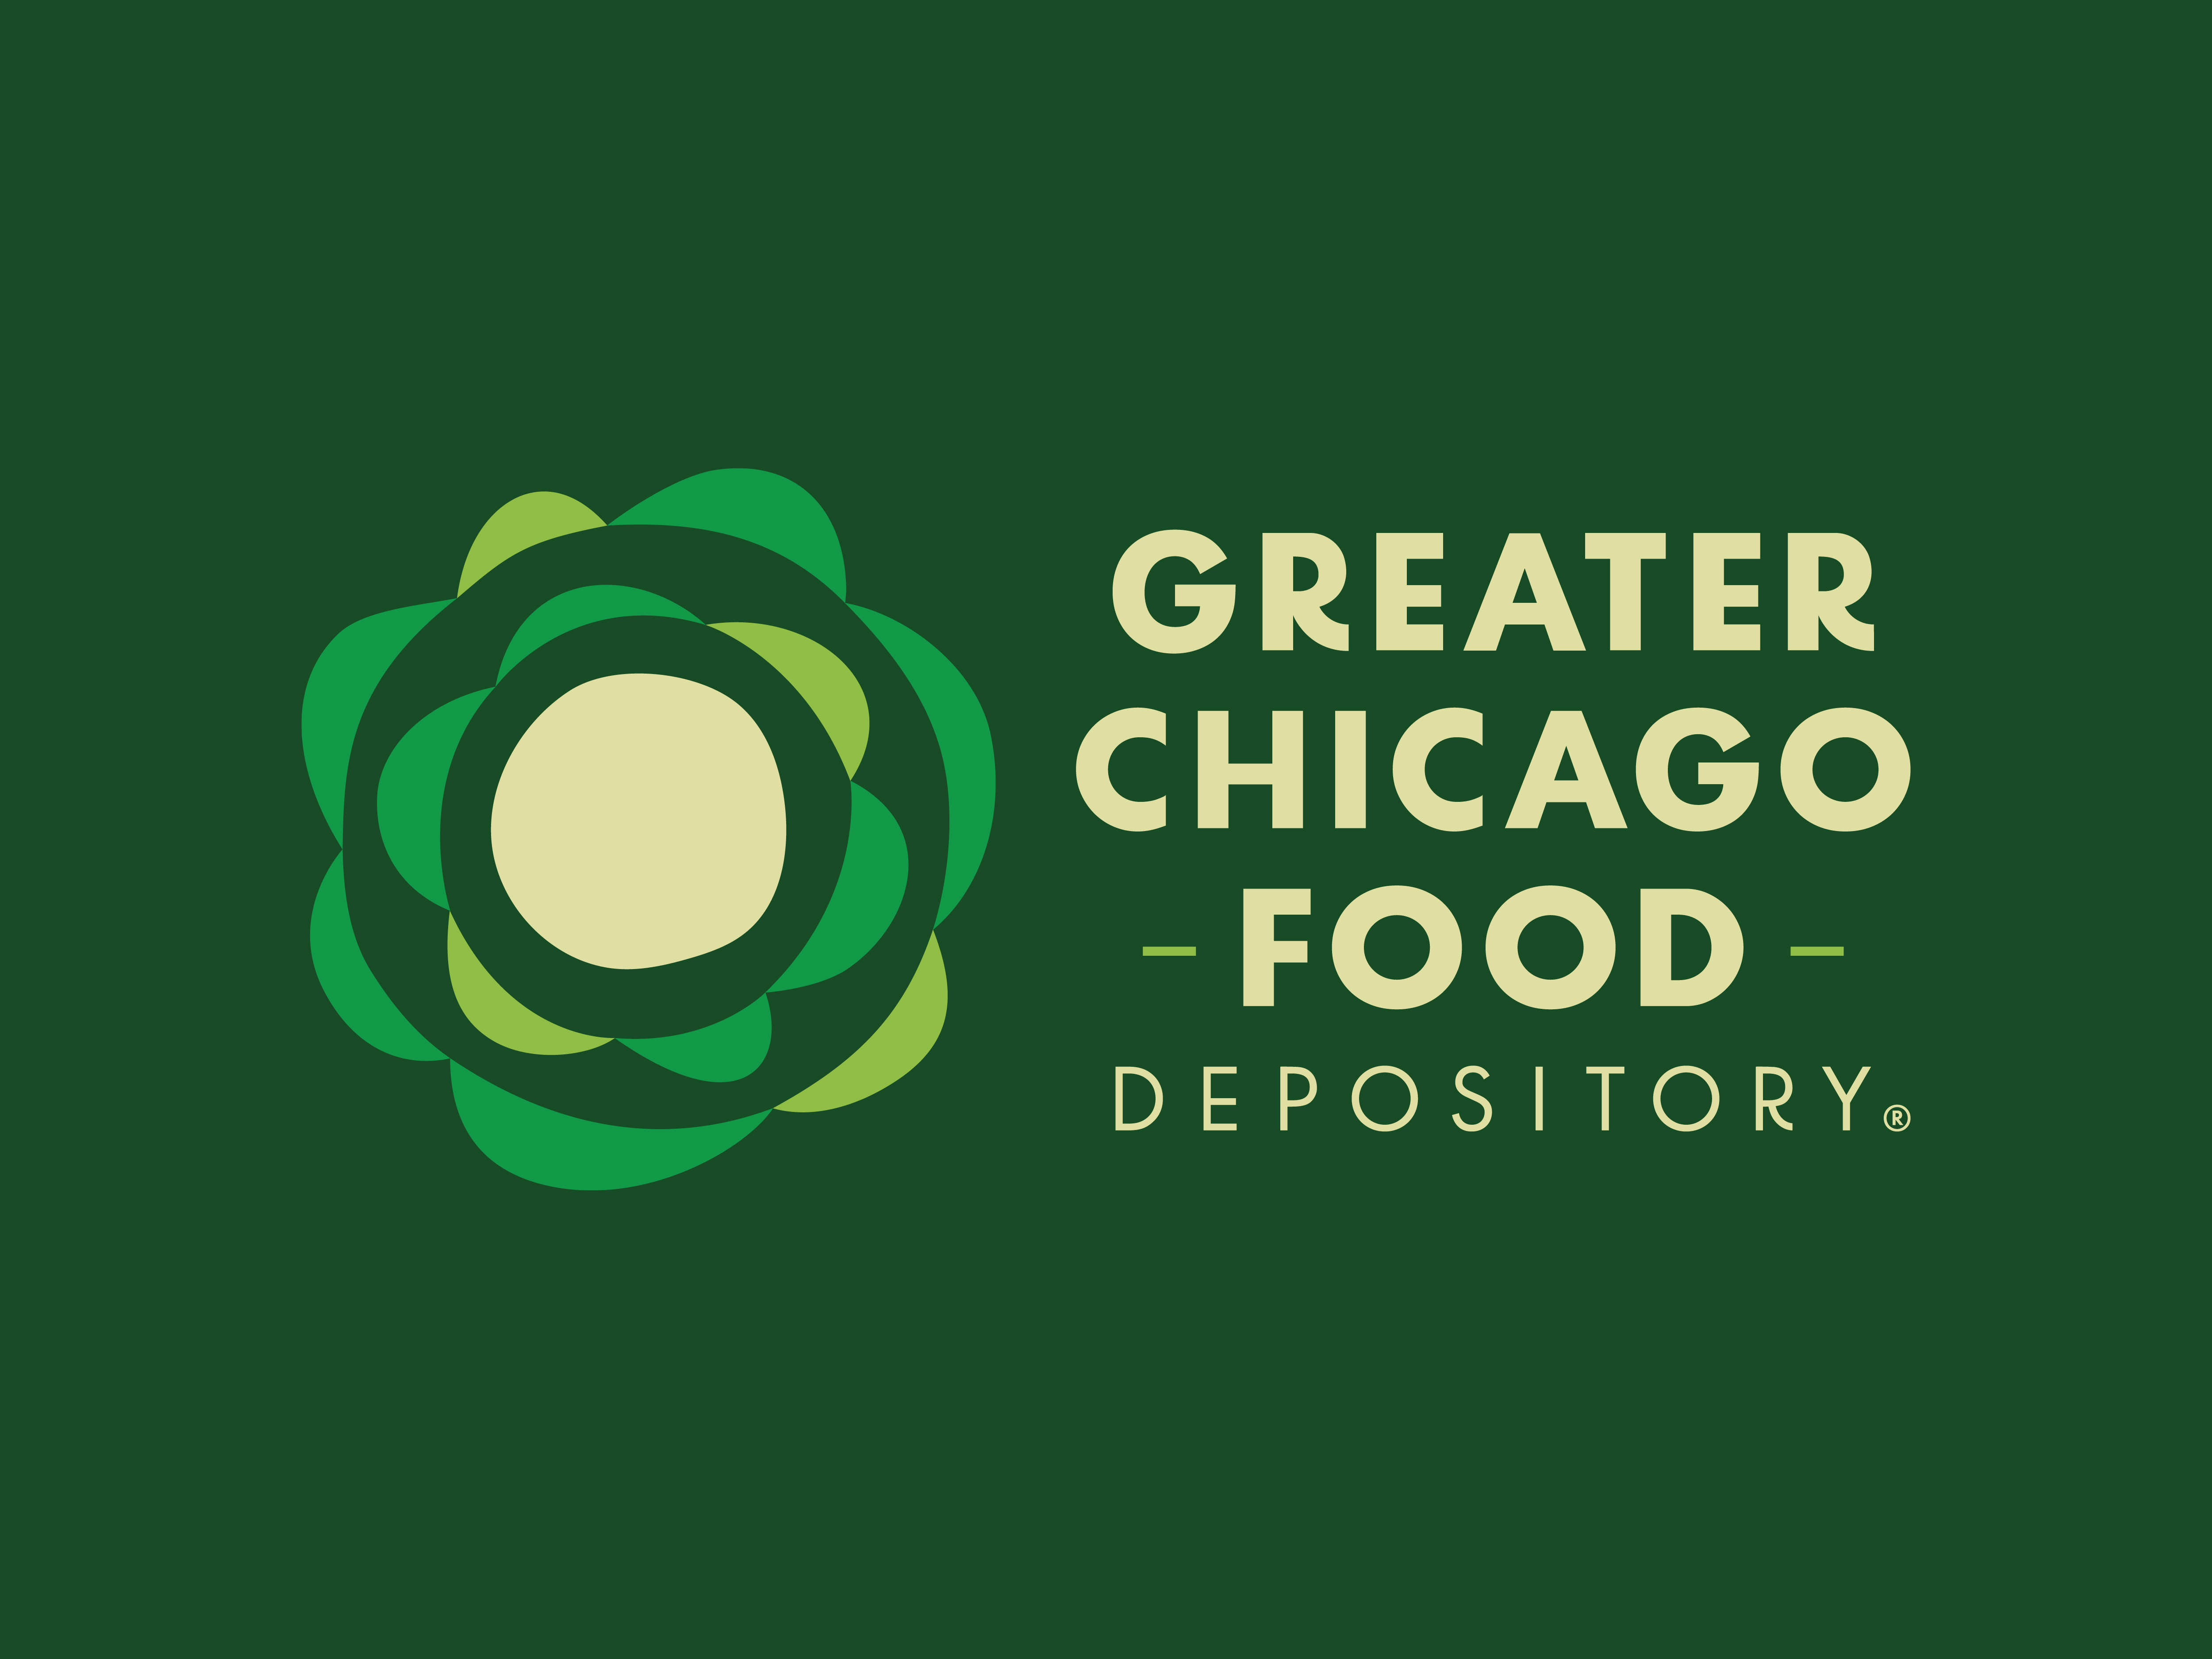 Rebranding a Chicago institution to help end hunger.